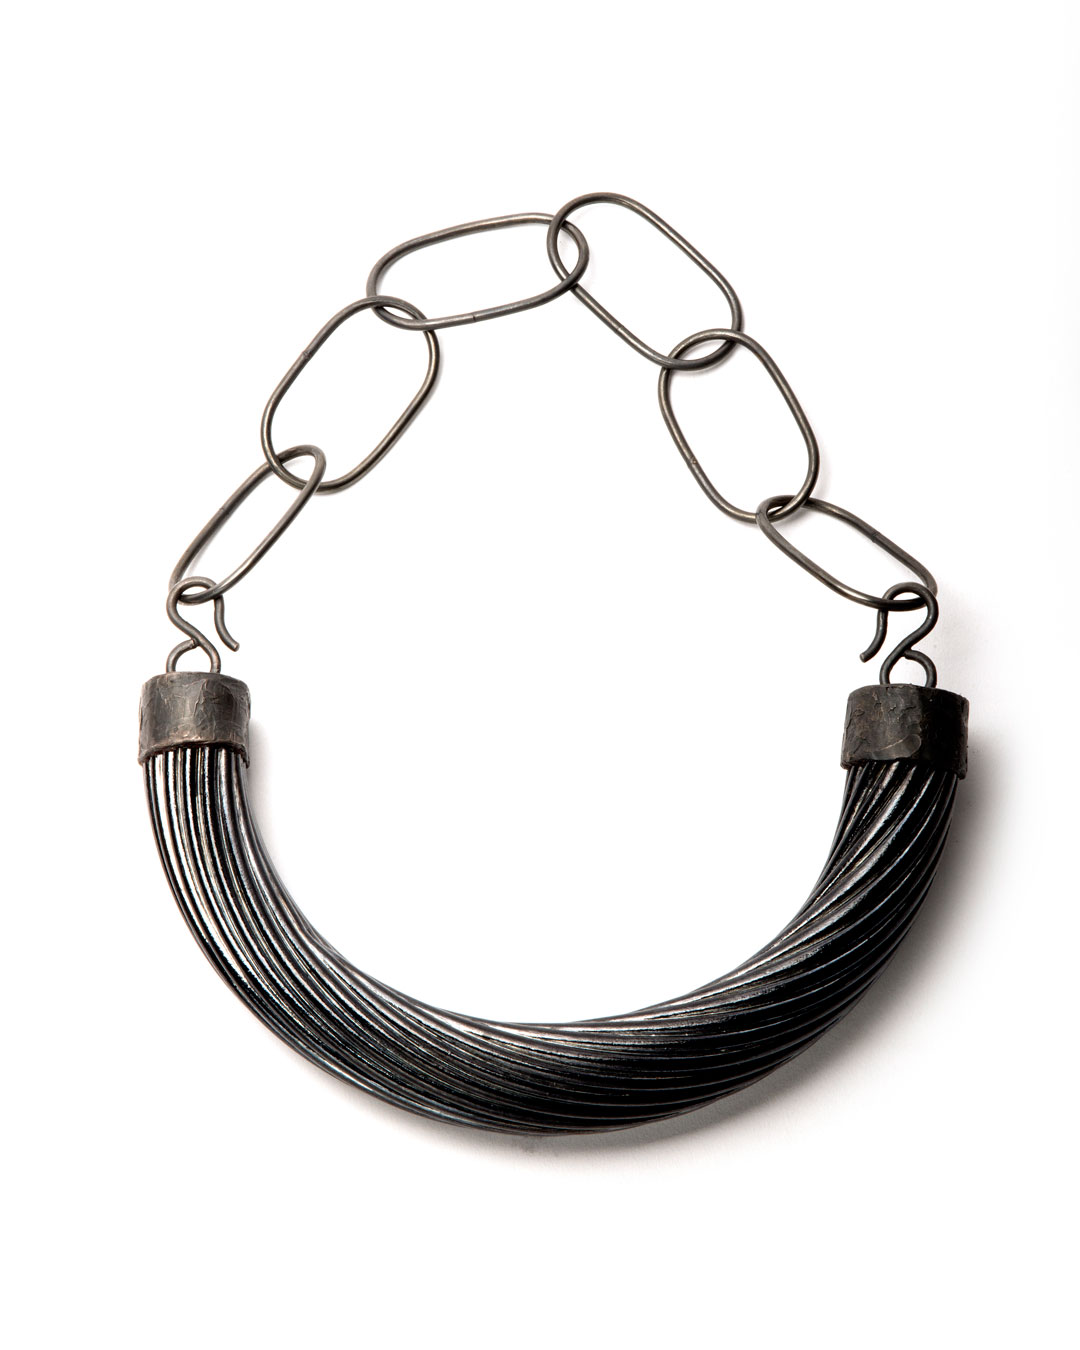 Willemijn de Greef, Shifting Context, 2019, necklace; silver, glass, epoxy, 265 x 210 x 39 mm, €3000